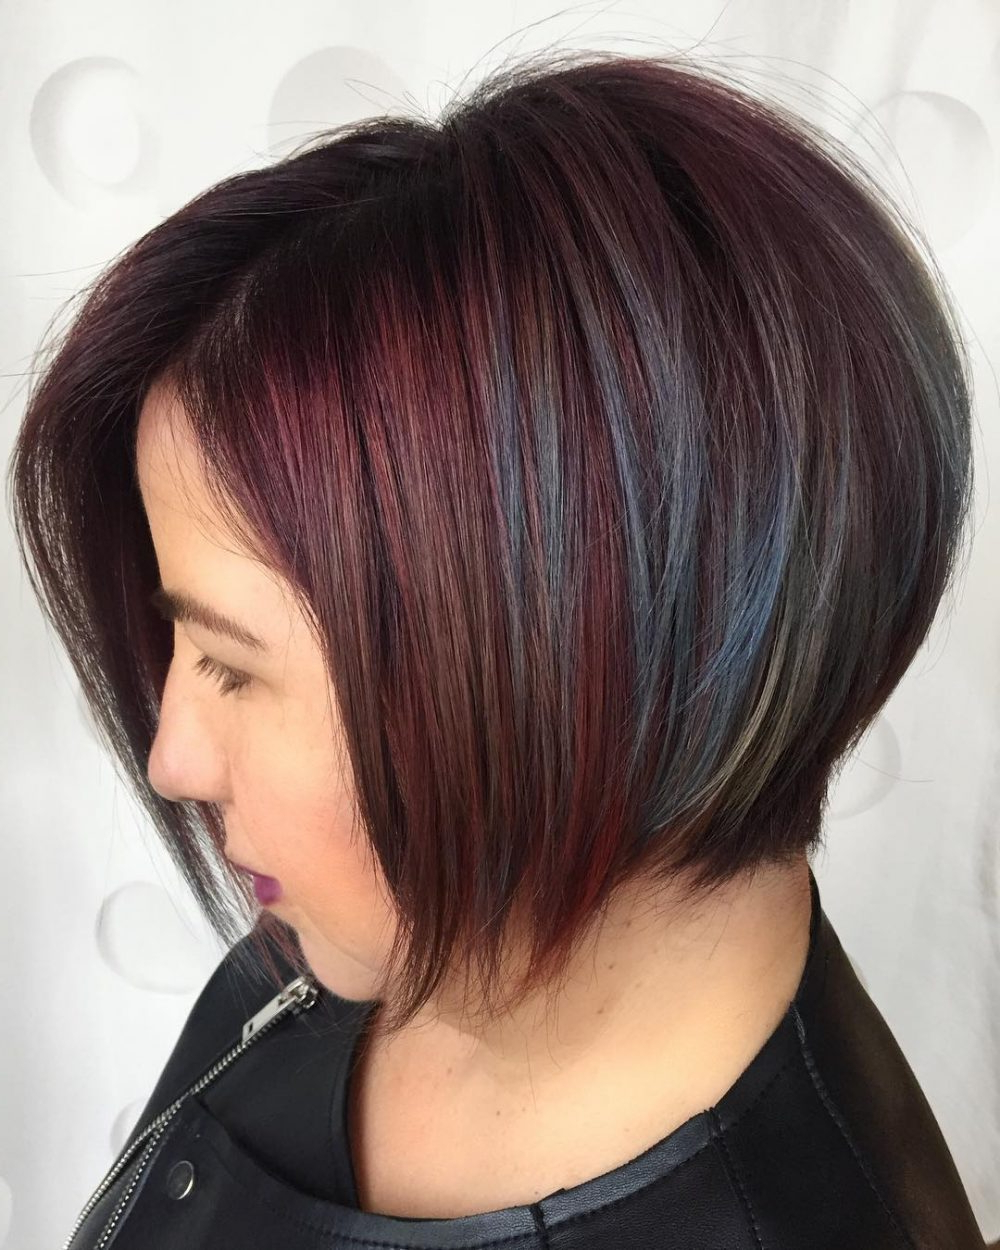 34 Greatest Short Haircuts And Hairstyles For Thick Hair For 2018 Regarding Medium To Short Haircuts For Thick Hair (View 8 of 25)